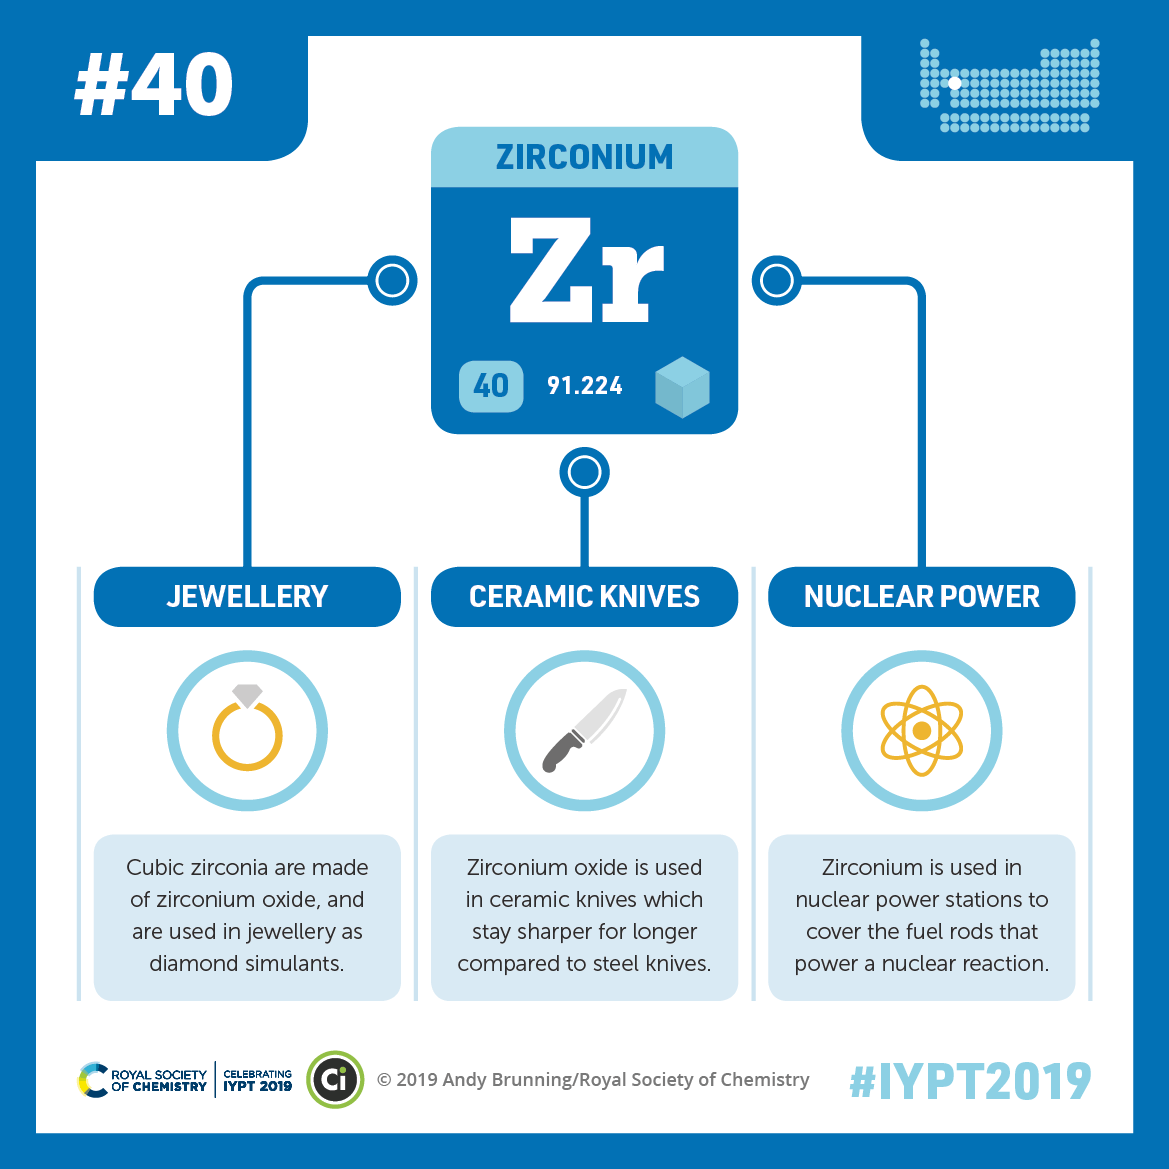 IYPT 2019 Elements 040: Zirconium: Jewellery, ceramic knives, and nuclear power